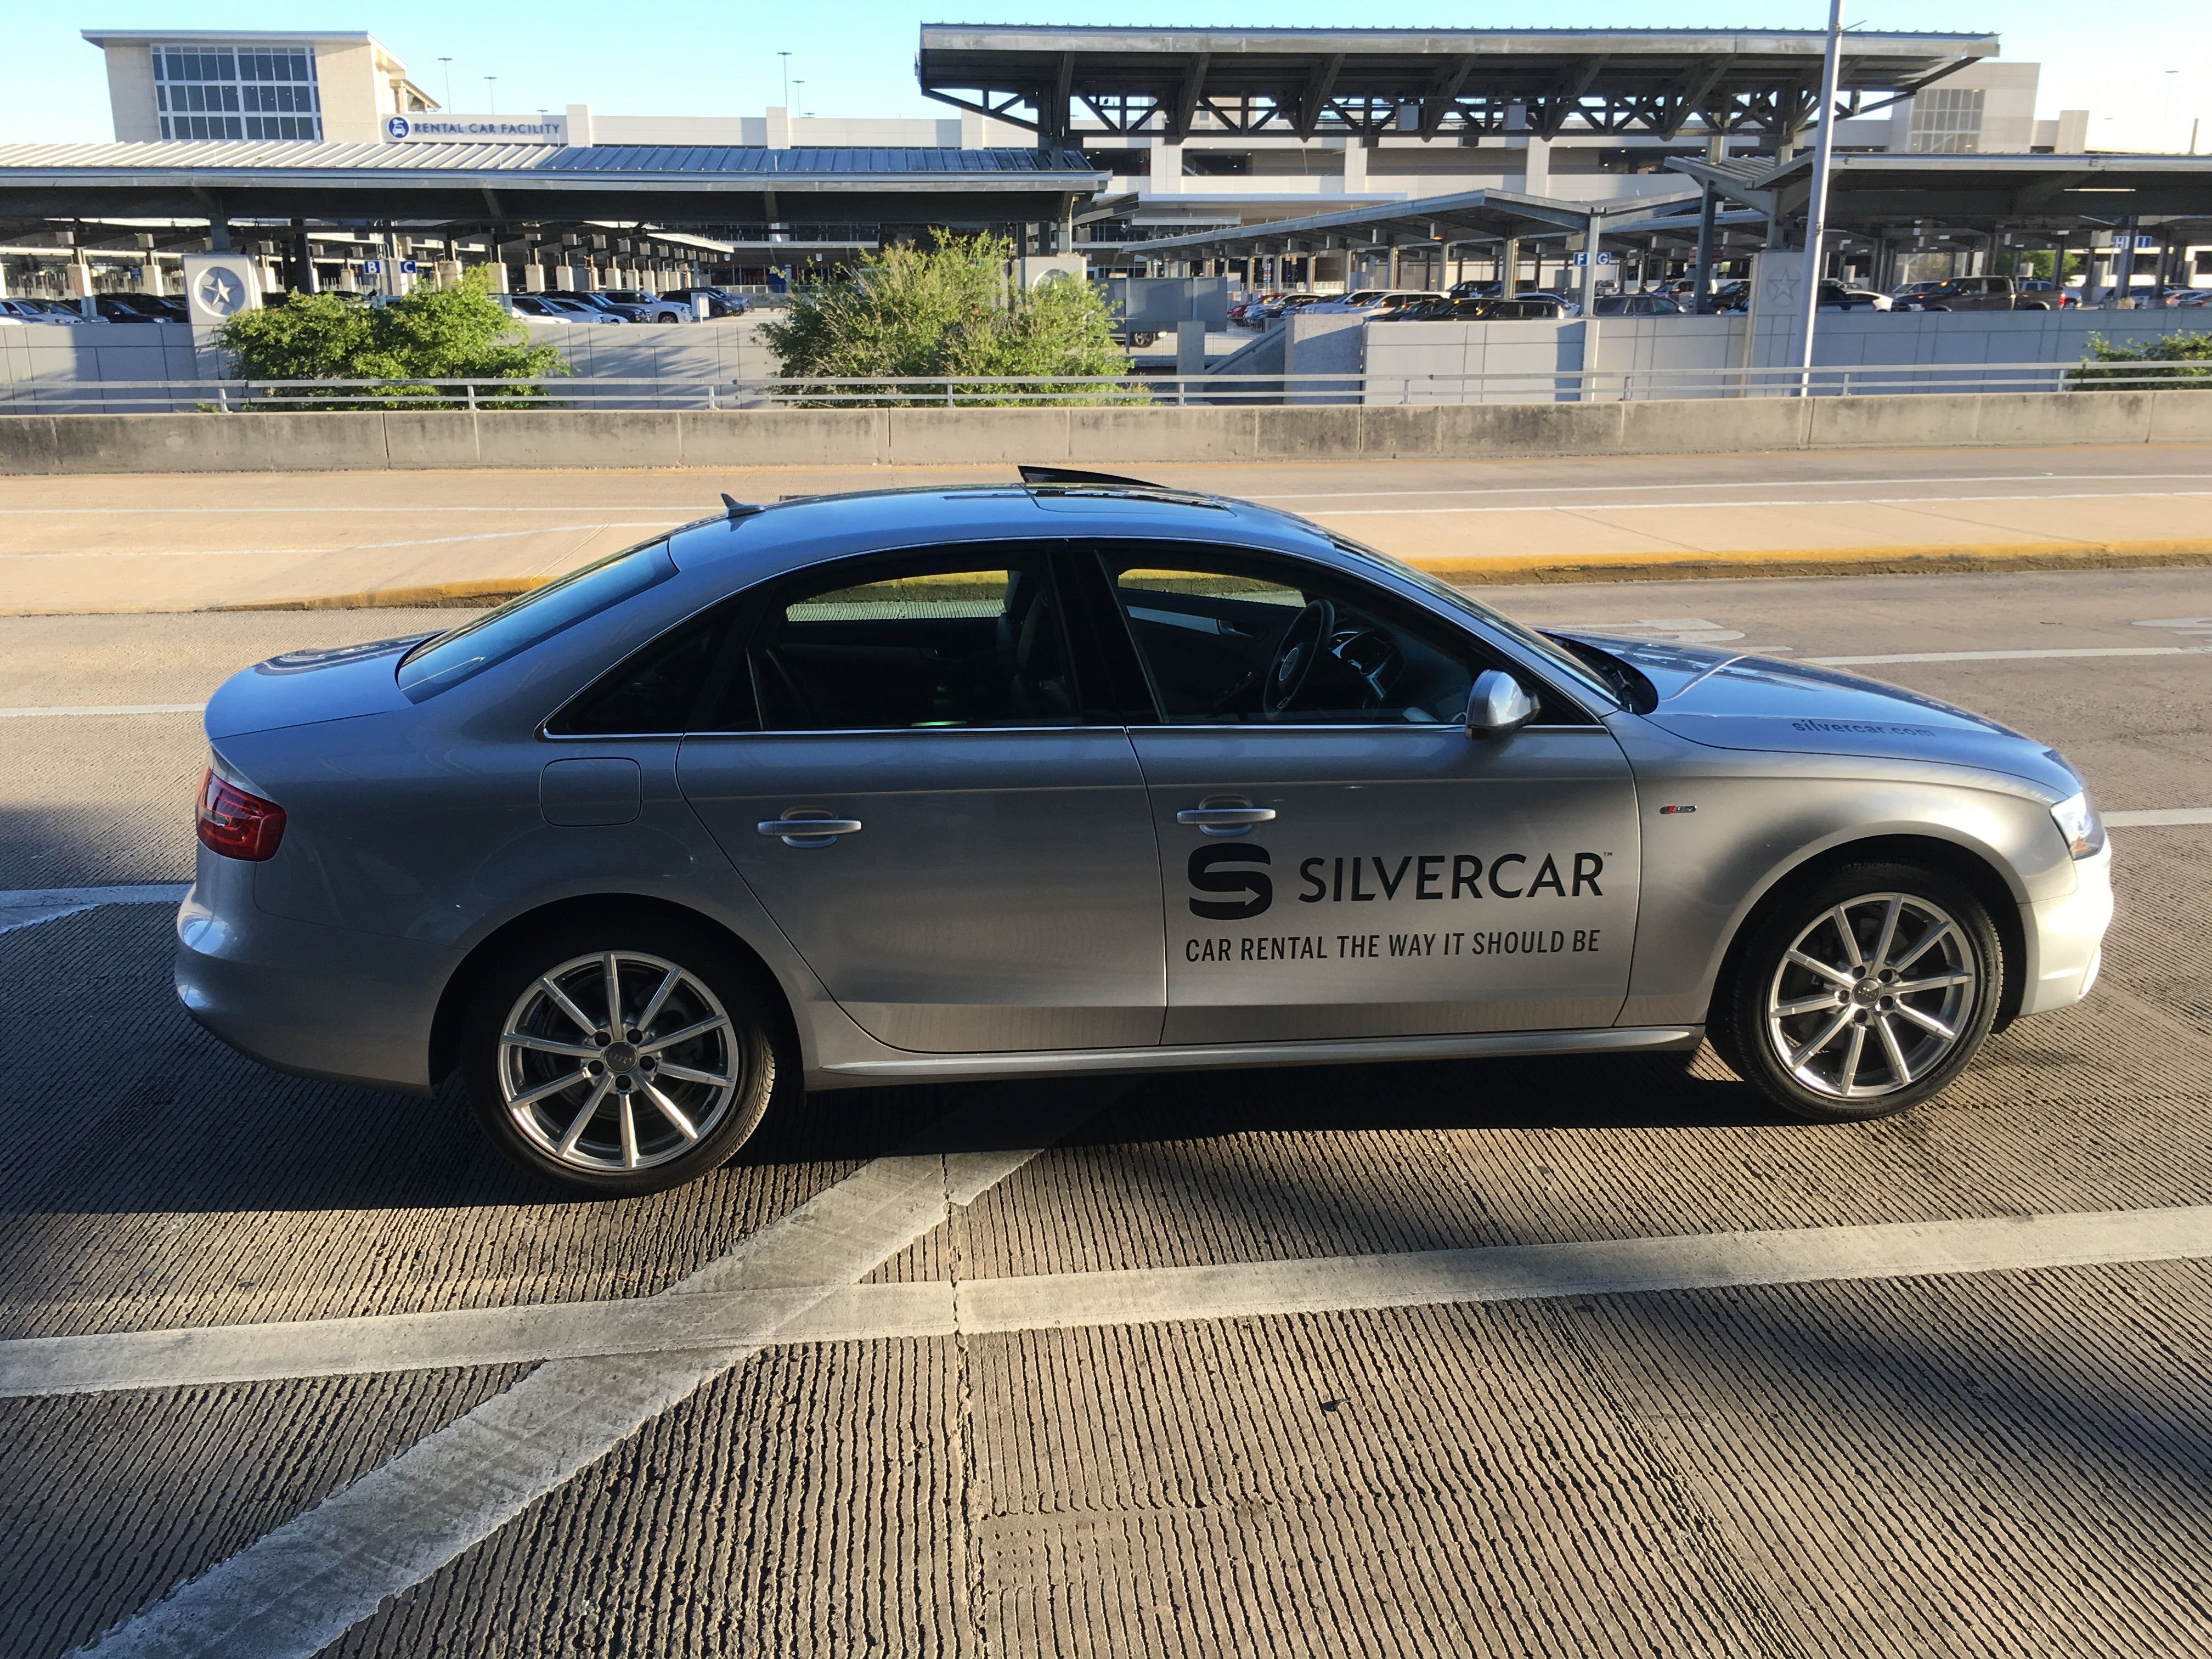 How To Enter A Silvercar Referral Code And Earn 25 After